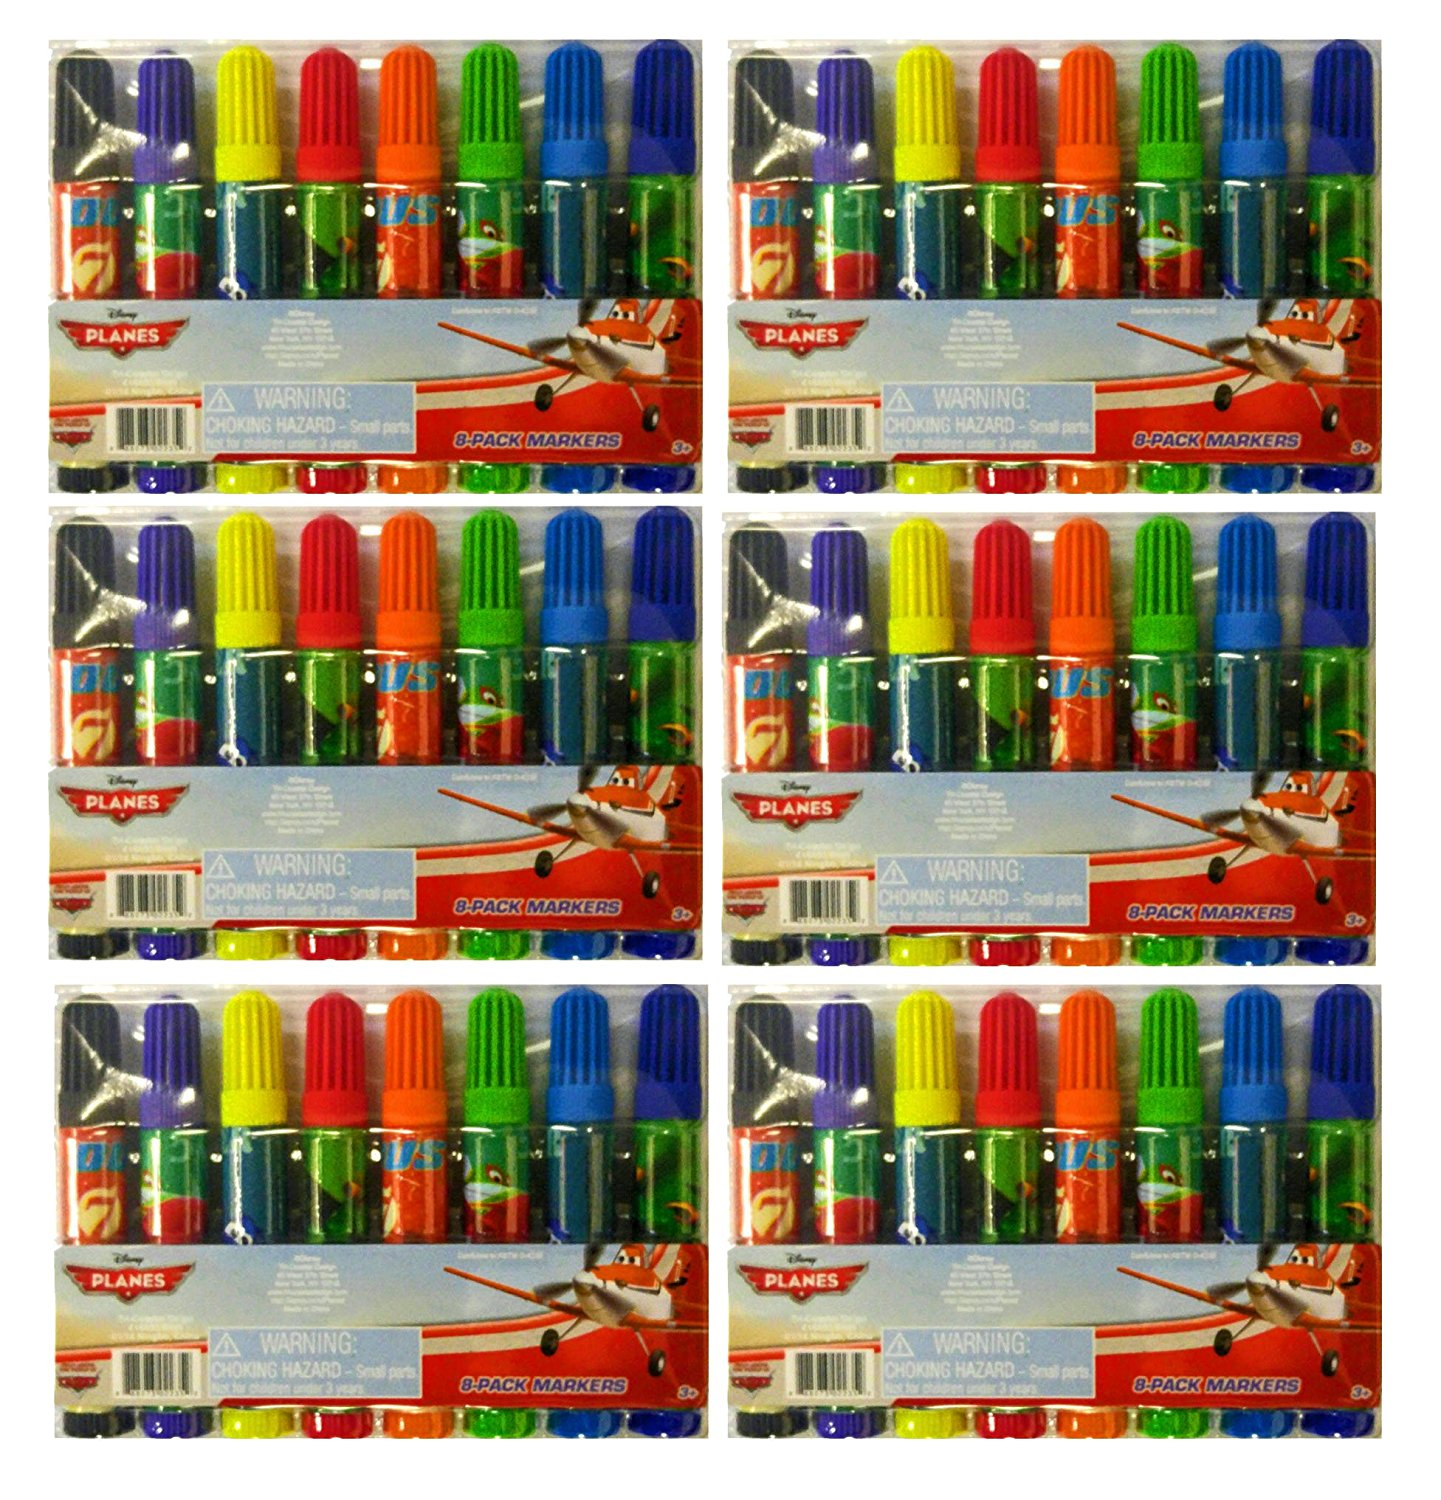 "Set of 6 Disney 8-Pack Childs Markers Assorted Colors 3.5"" Marker, Includes- (6)- Disney Planes 8 pack marker sets By Planes"